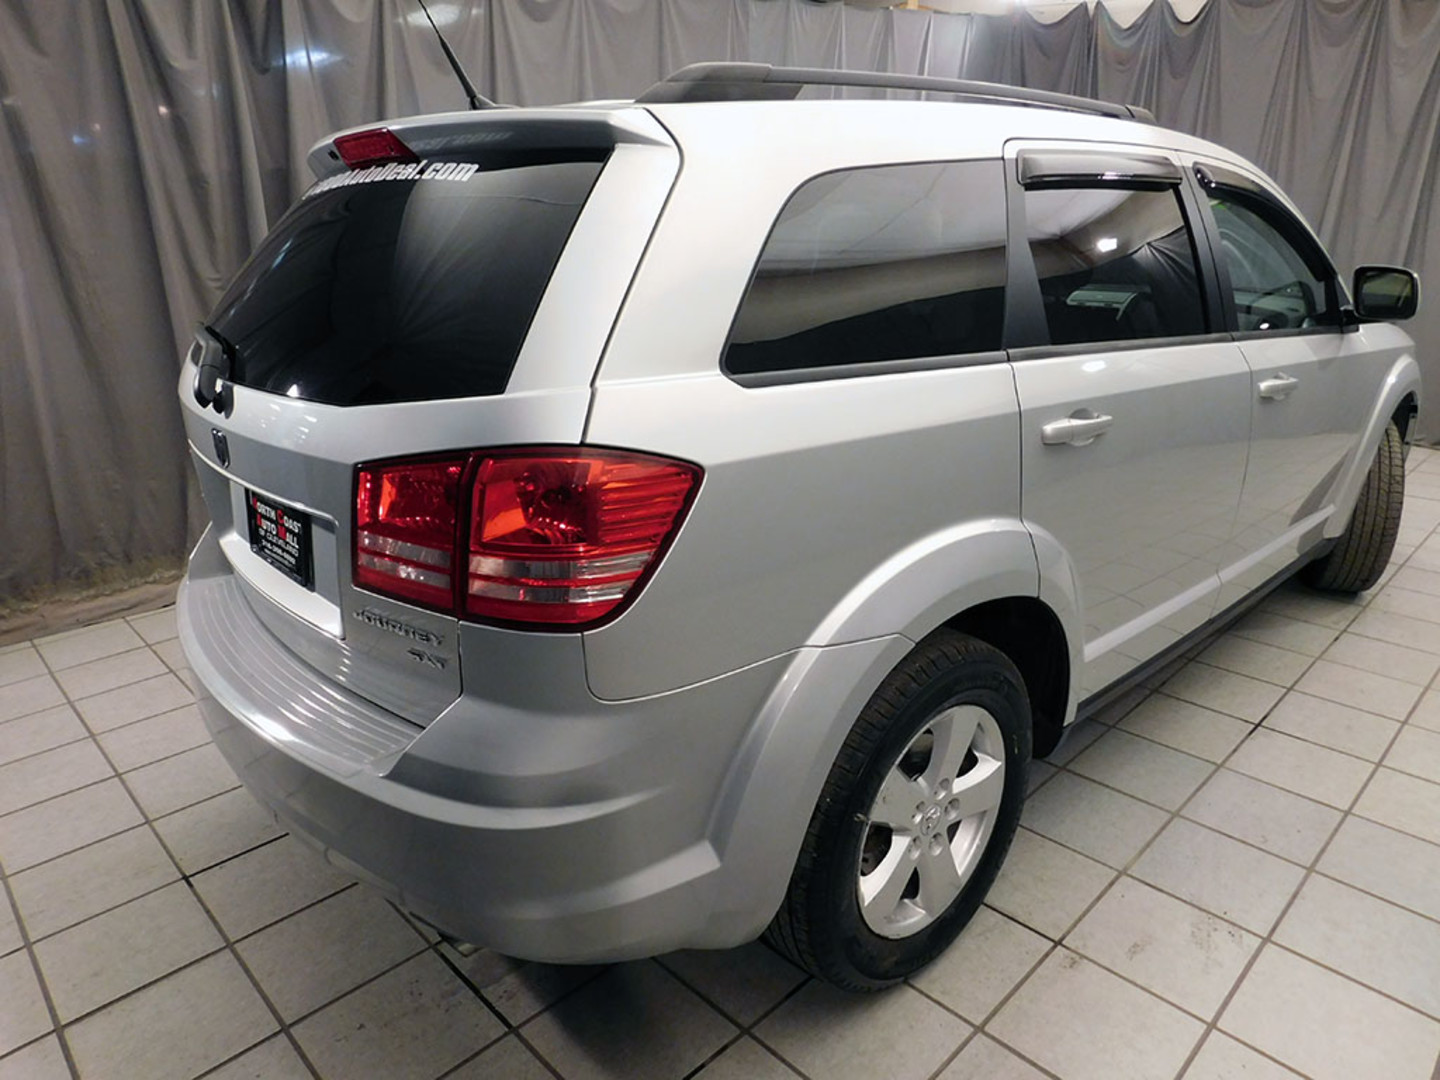 2010 dodge journey sxt as low as 999 down city ohio north coast auto mall of cleveland. Black Bedroom Furniture Sets. Home Design Ideas